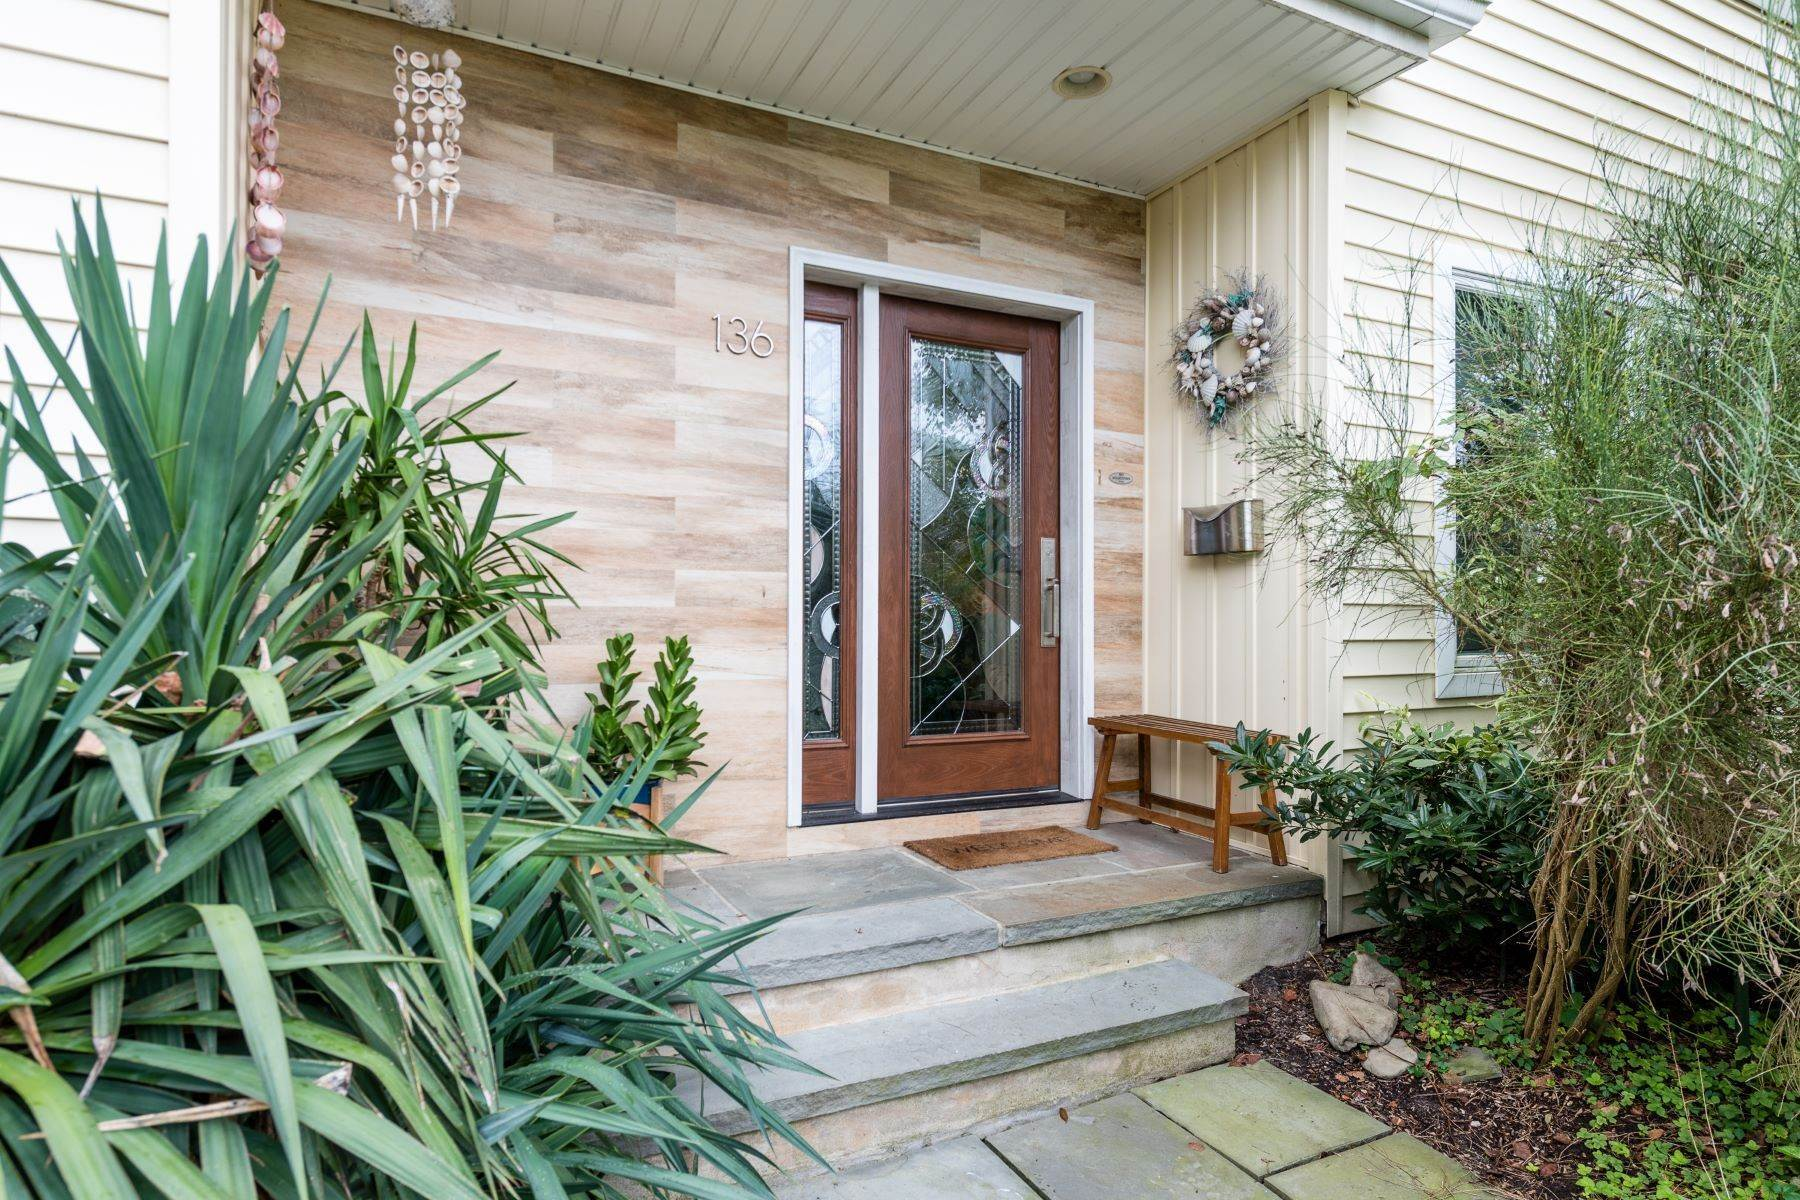 Single Family Homes for Sale at 136 Fairway Road, Lido Beach, Ny, 11561 136 Fairway Road Lido Beach, New York 11561 United States